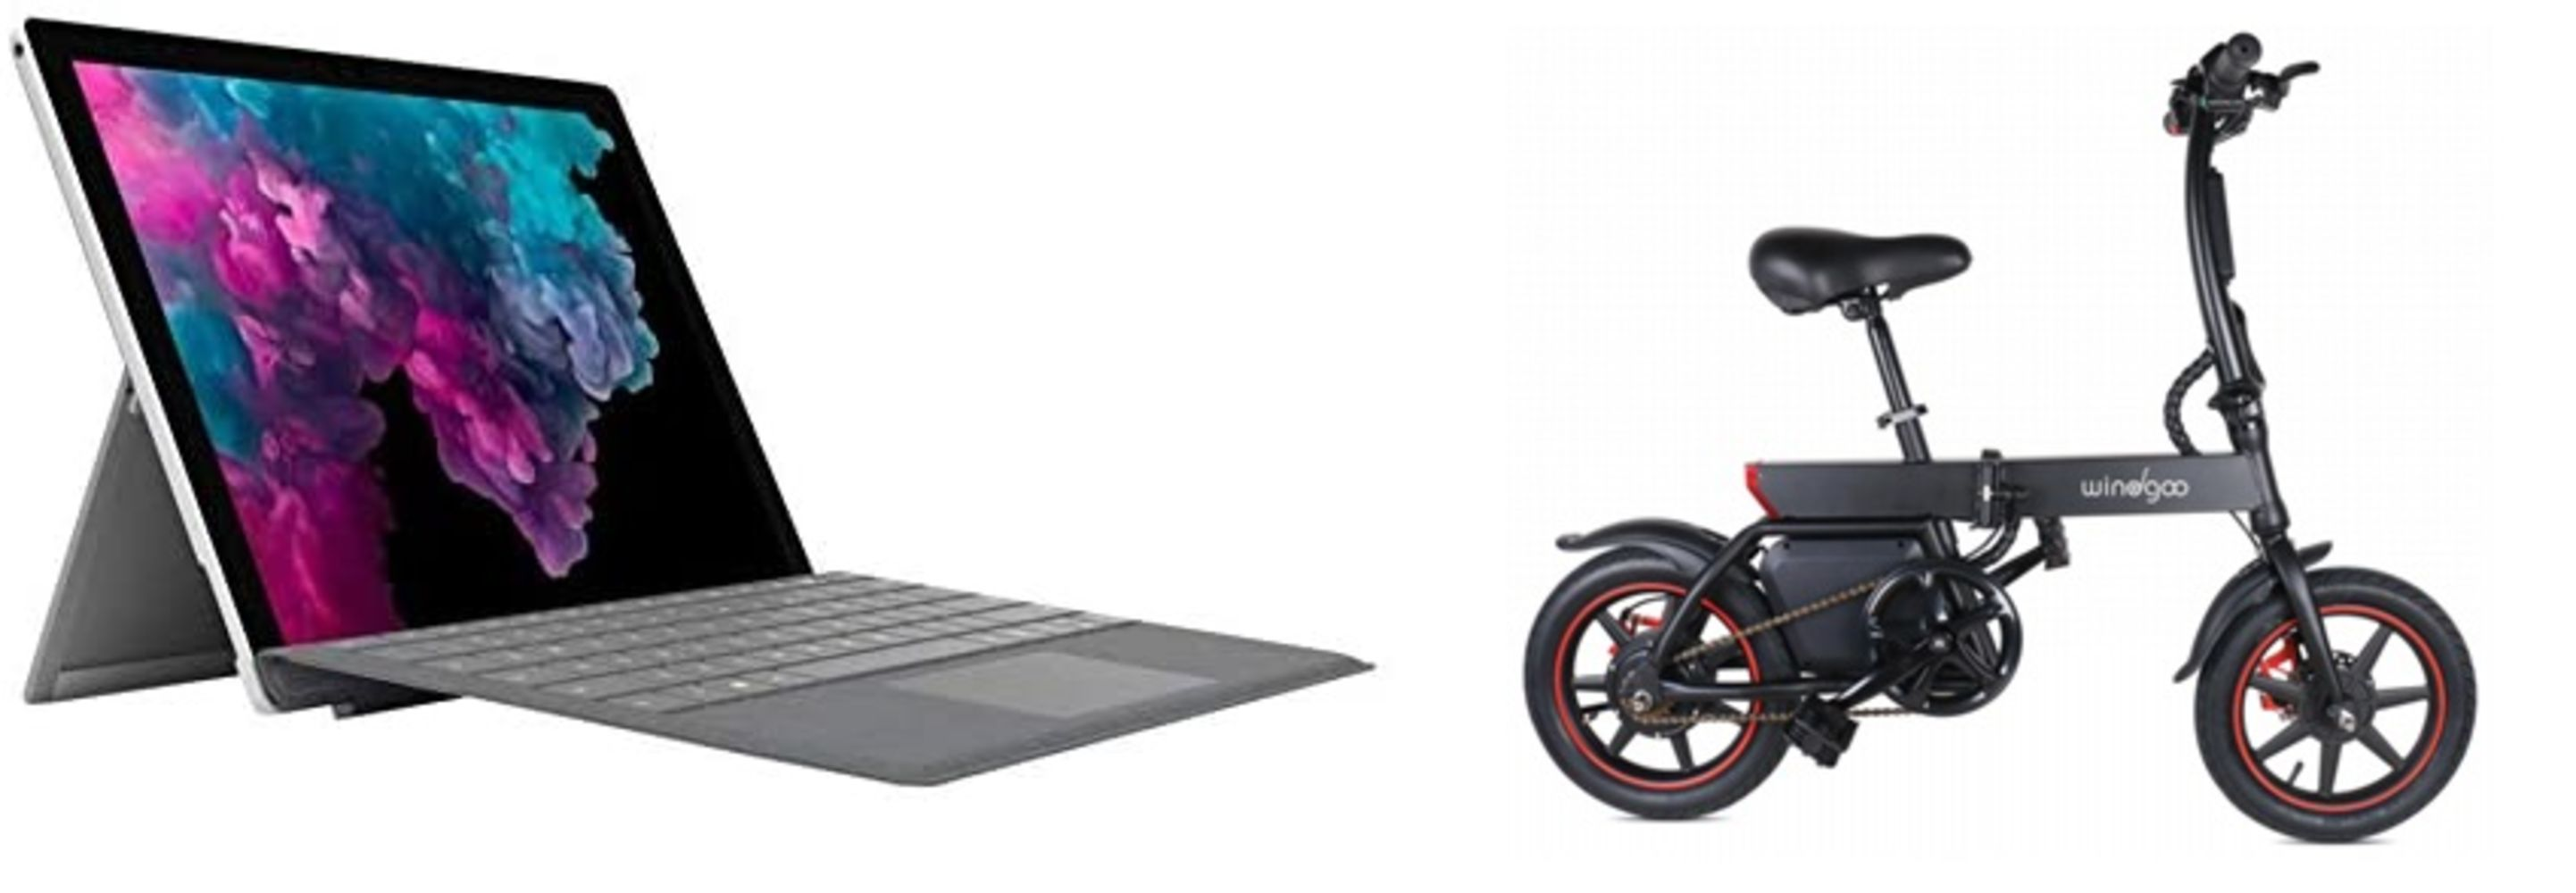 NO VAT on most items. 60 x iPads &18 x Microsoft Surface Pro. Sold in 2 lots. Electric scooters, bikes and hoverboards. Samsung Galaxy Note 9